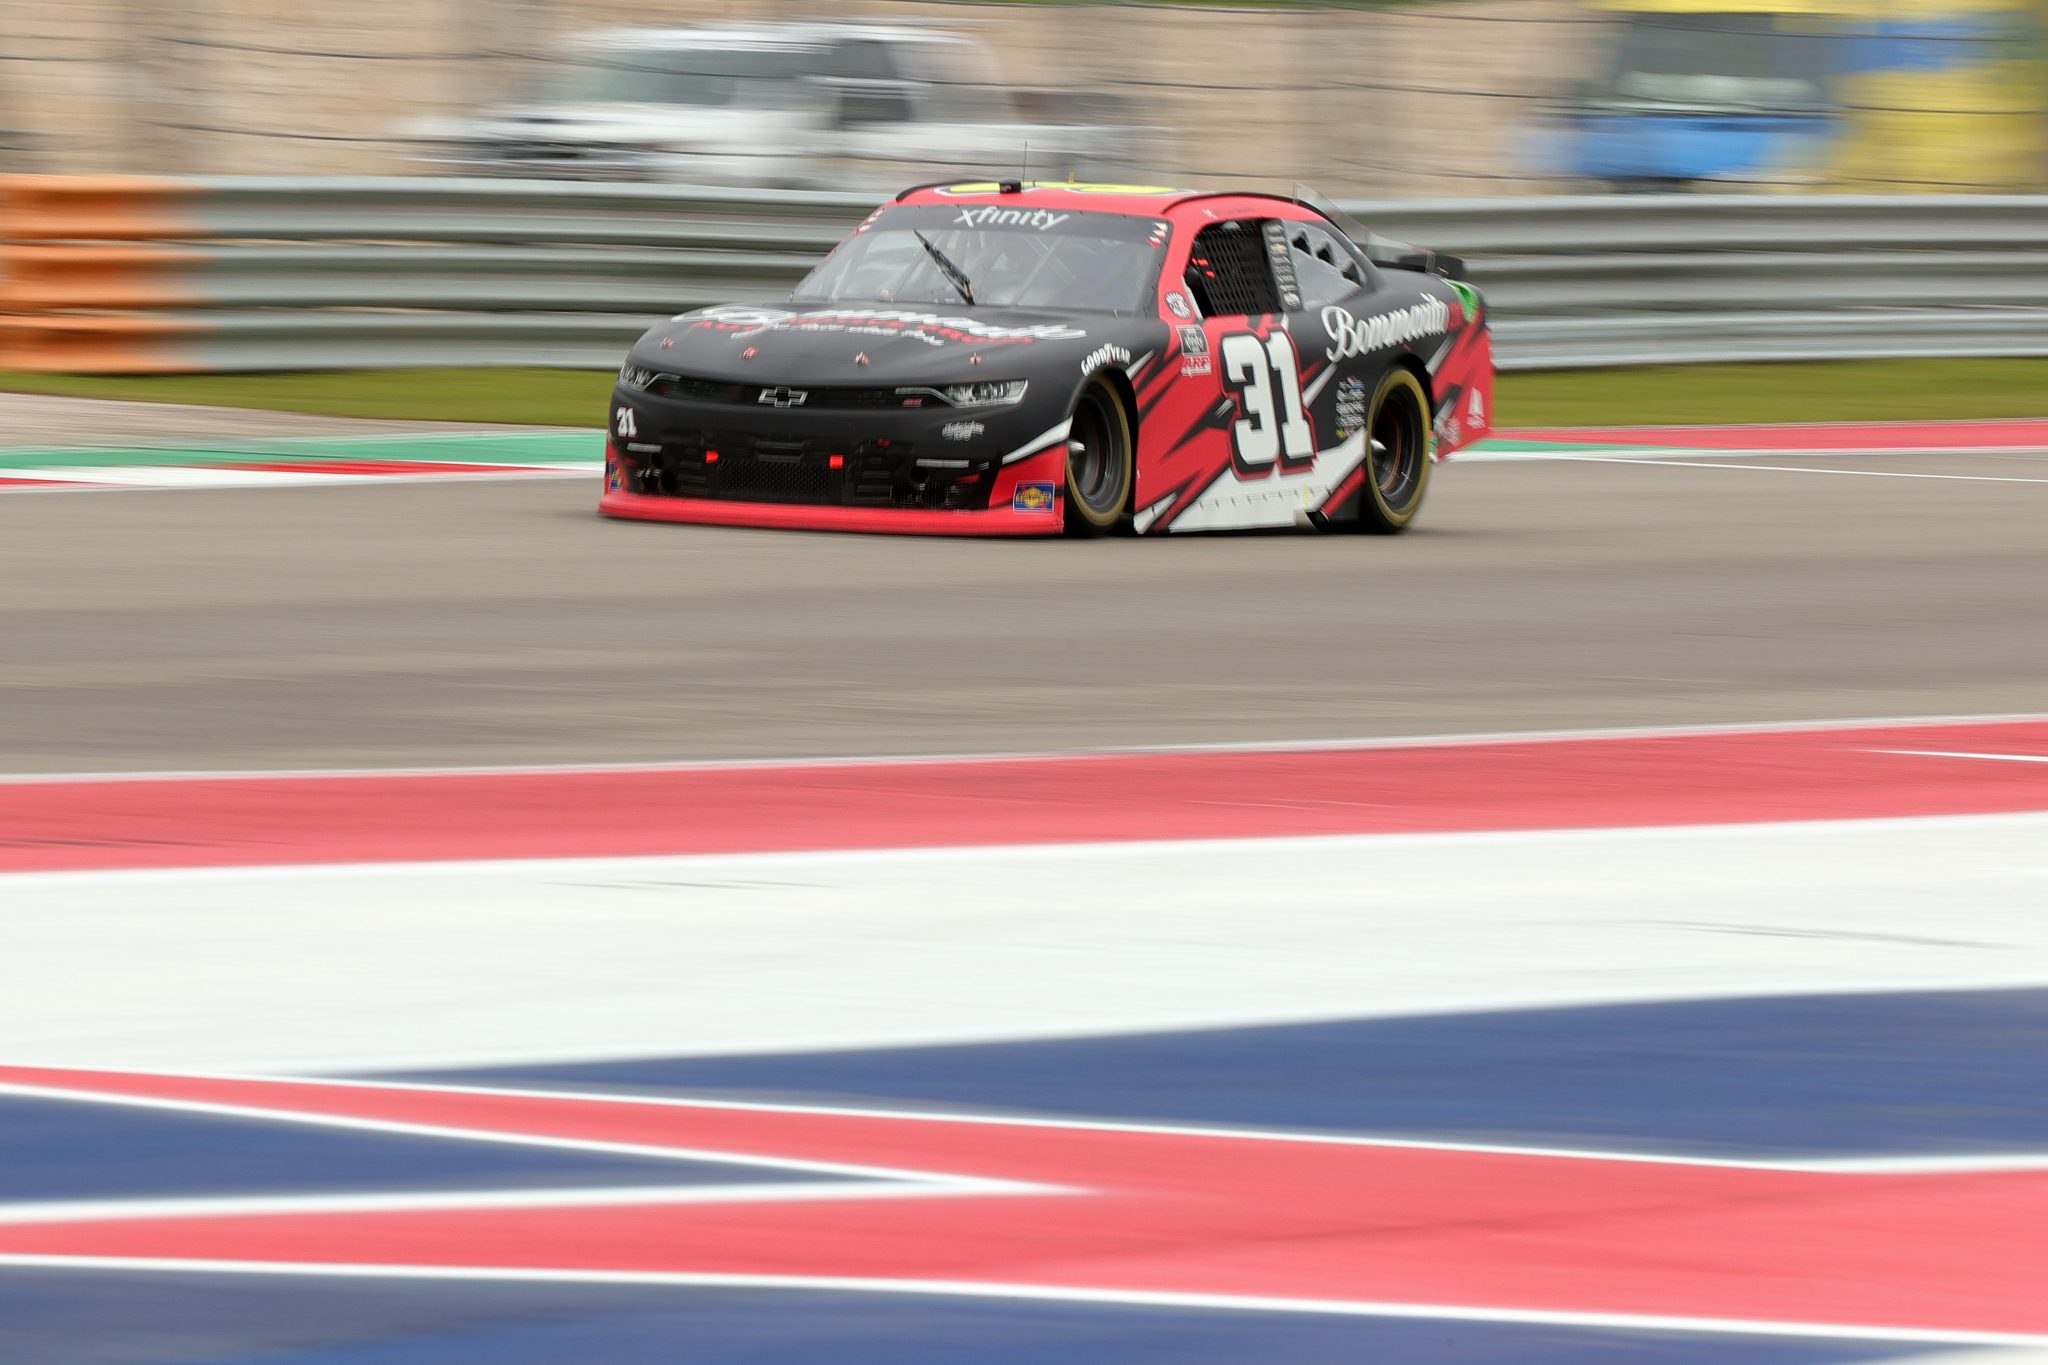 AUSTIN, TEXAS - MAY 22: Tyler Reddick, driver of the #31 Bommarito Automotive Group Chevrolet, drives during the NASCAR Xfinity Series Pit Boss 250 at Circuit of The Americas on May 22, 2021 in Austin, Texas. (Photo by Carmen Mandato/Getty Images) | Getty Images